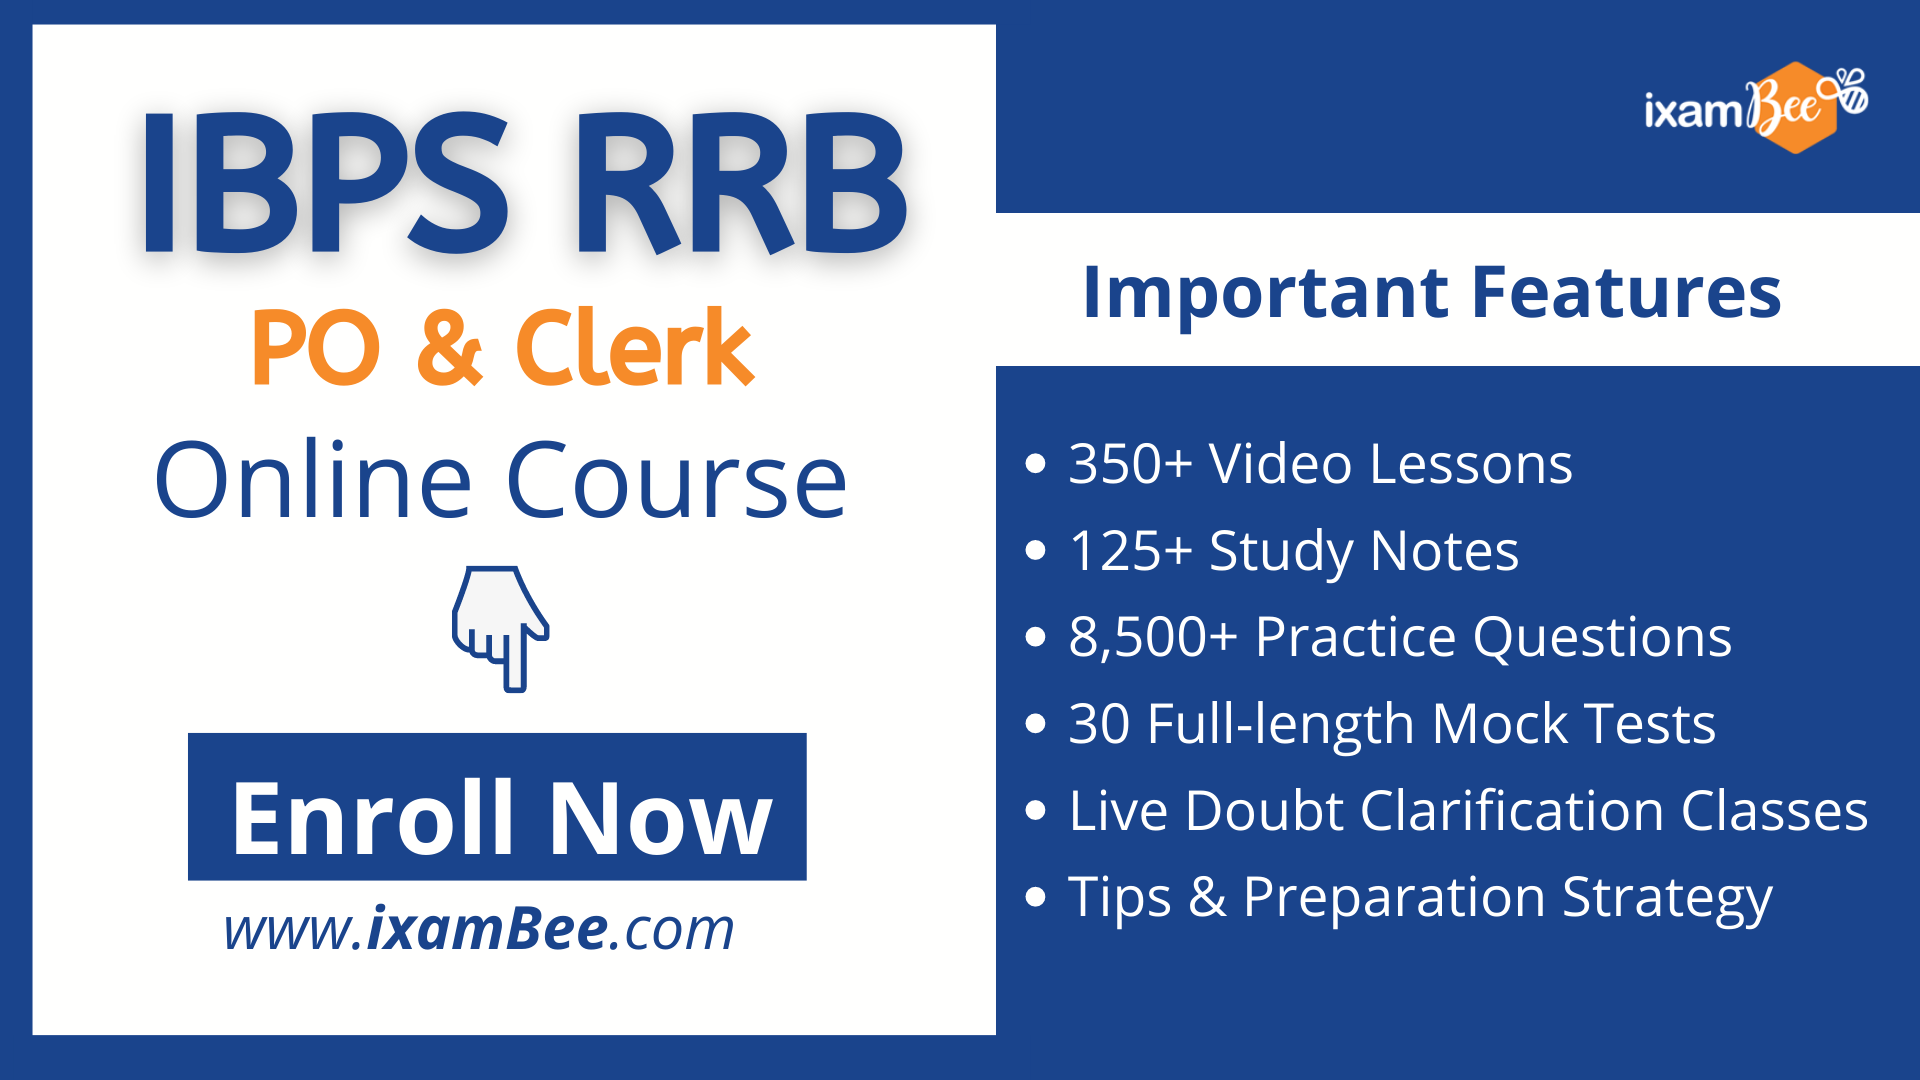 IBPS RRB PO and Clerk online course